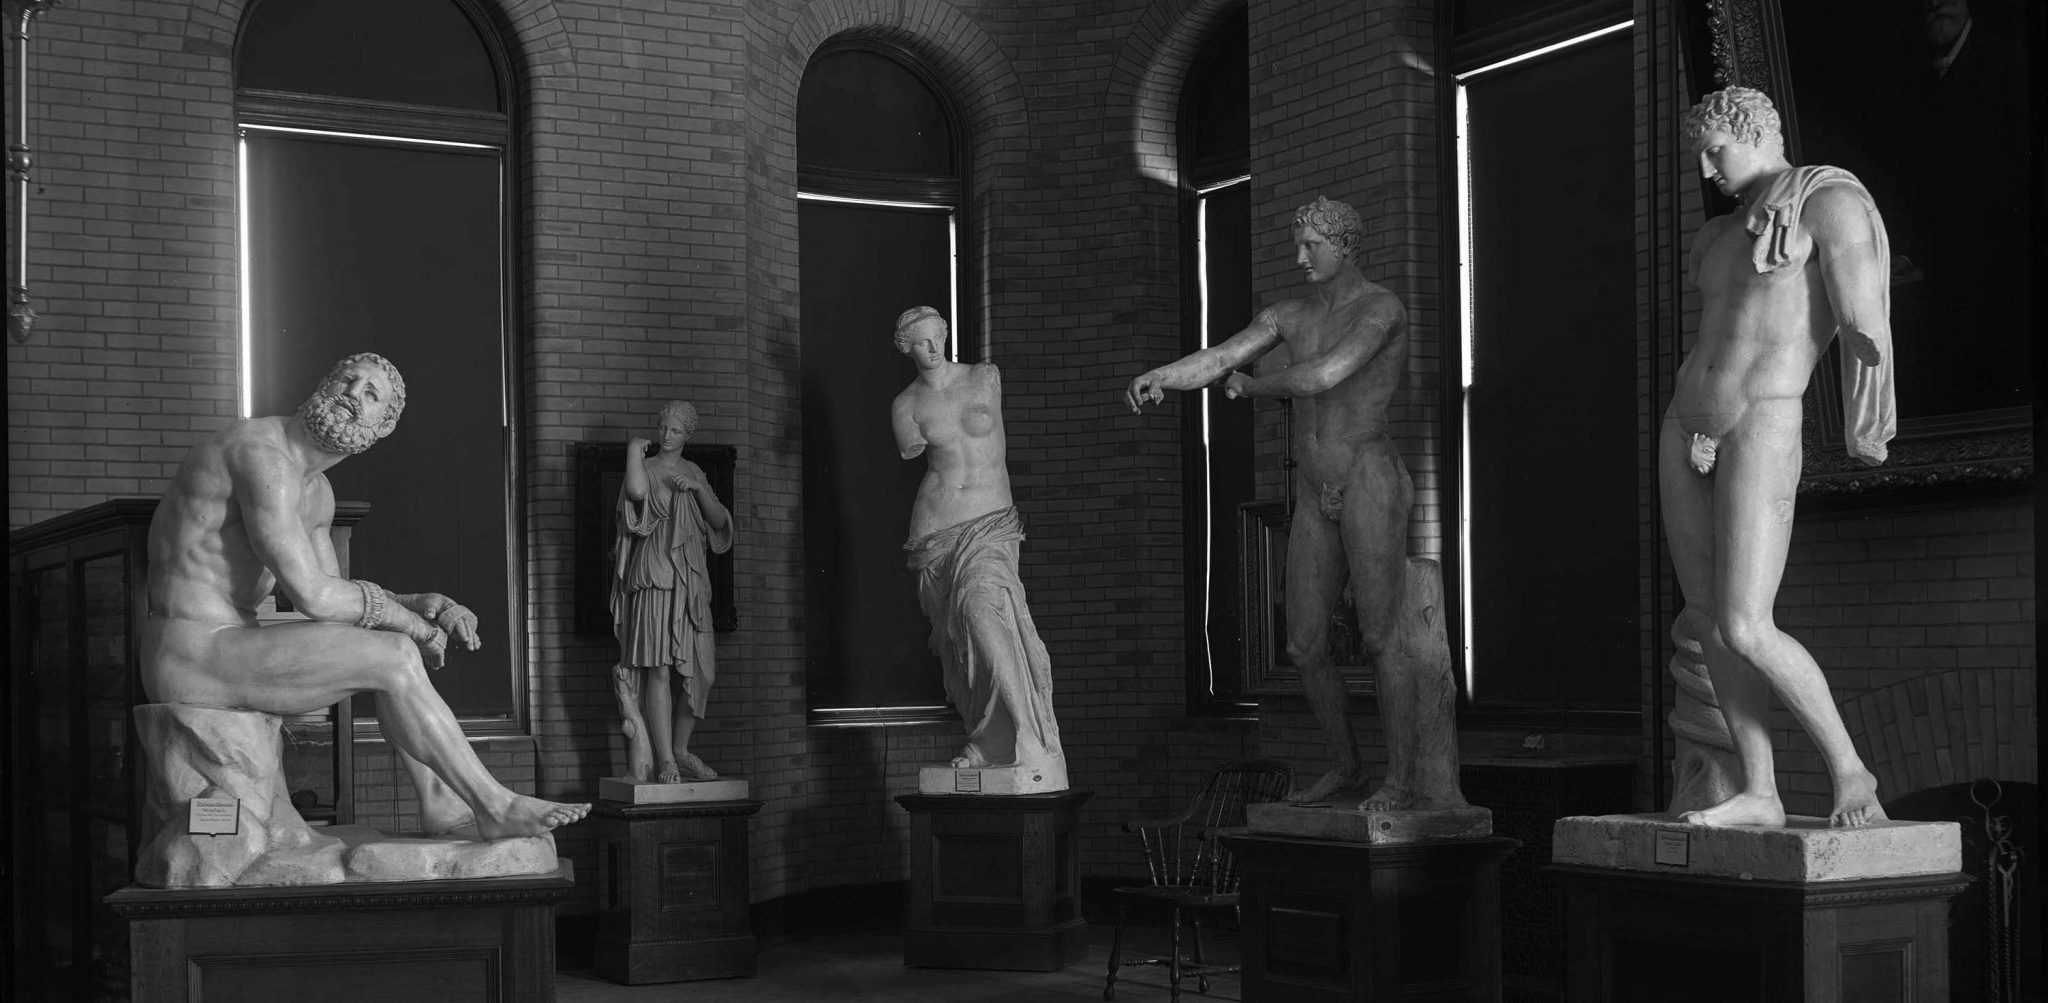 <p>Plaster cast statues in library, 1904. Photo by Edward H. Stone.</p><p>Edward H. Stone Collection. Special Collections and University Archives, Colgate University Libraries.</p>